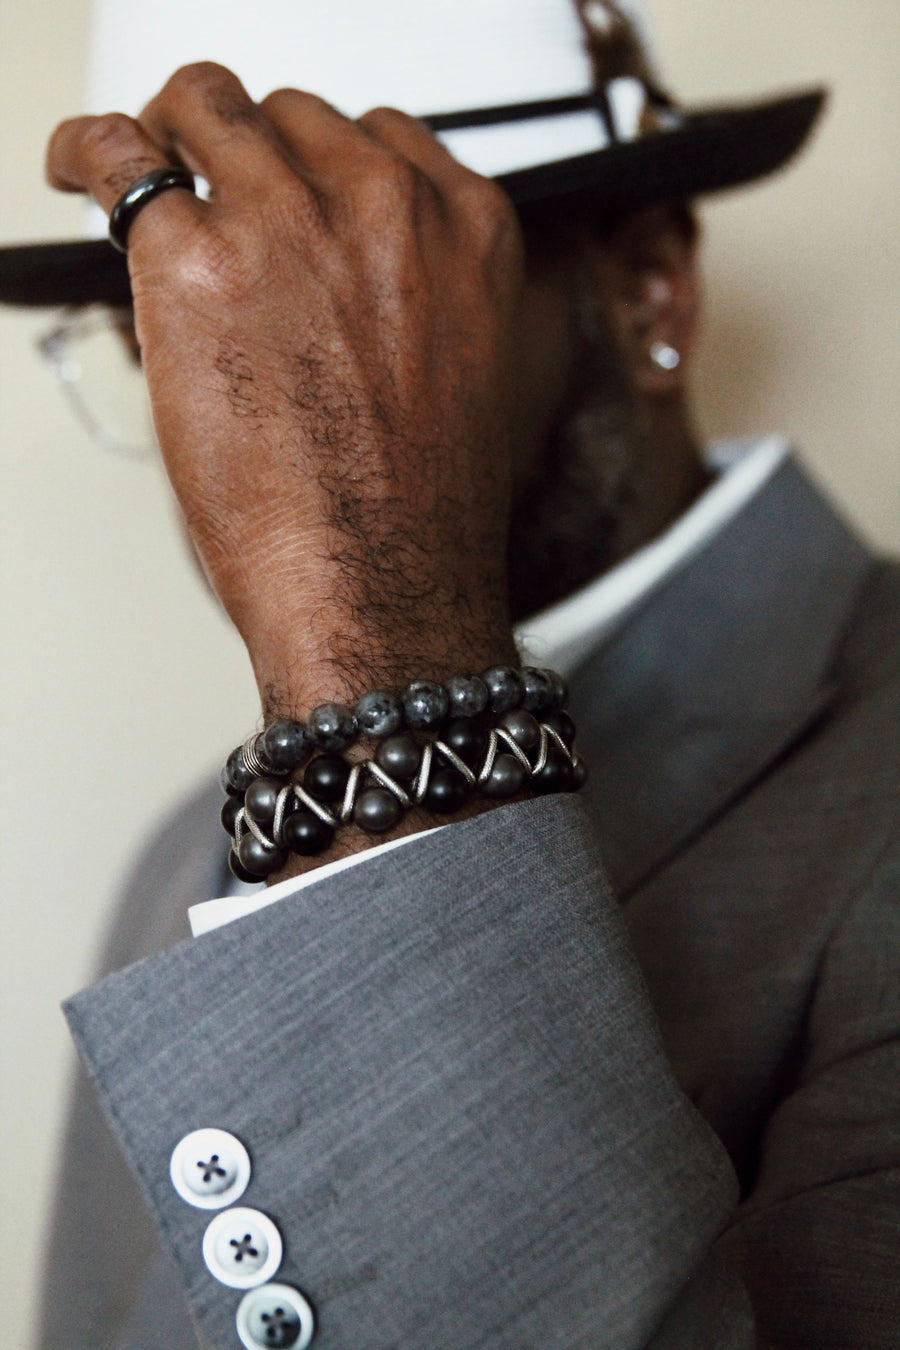 The Lamar Stretch Bracelet